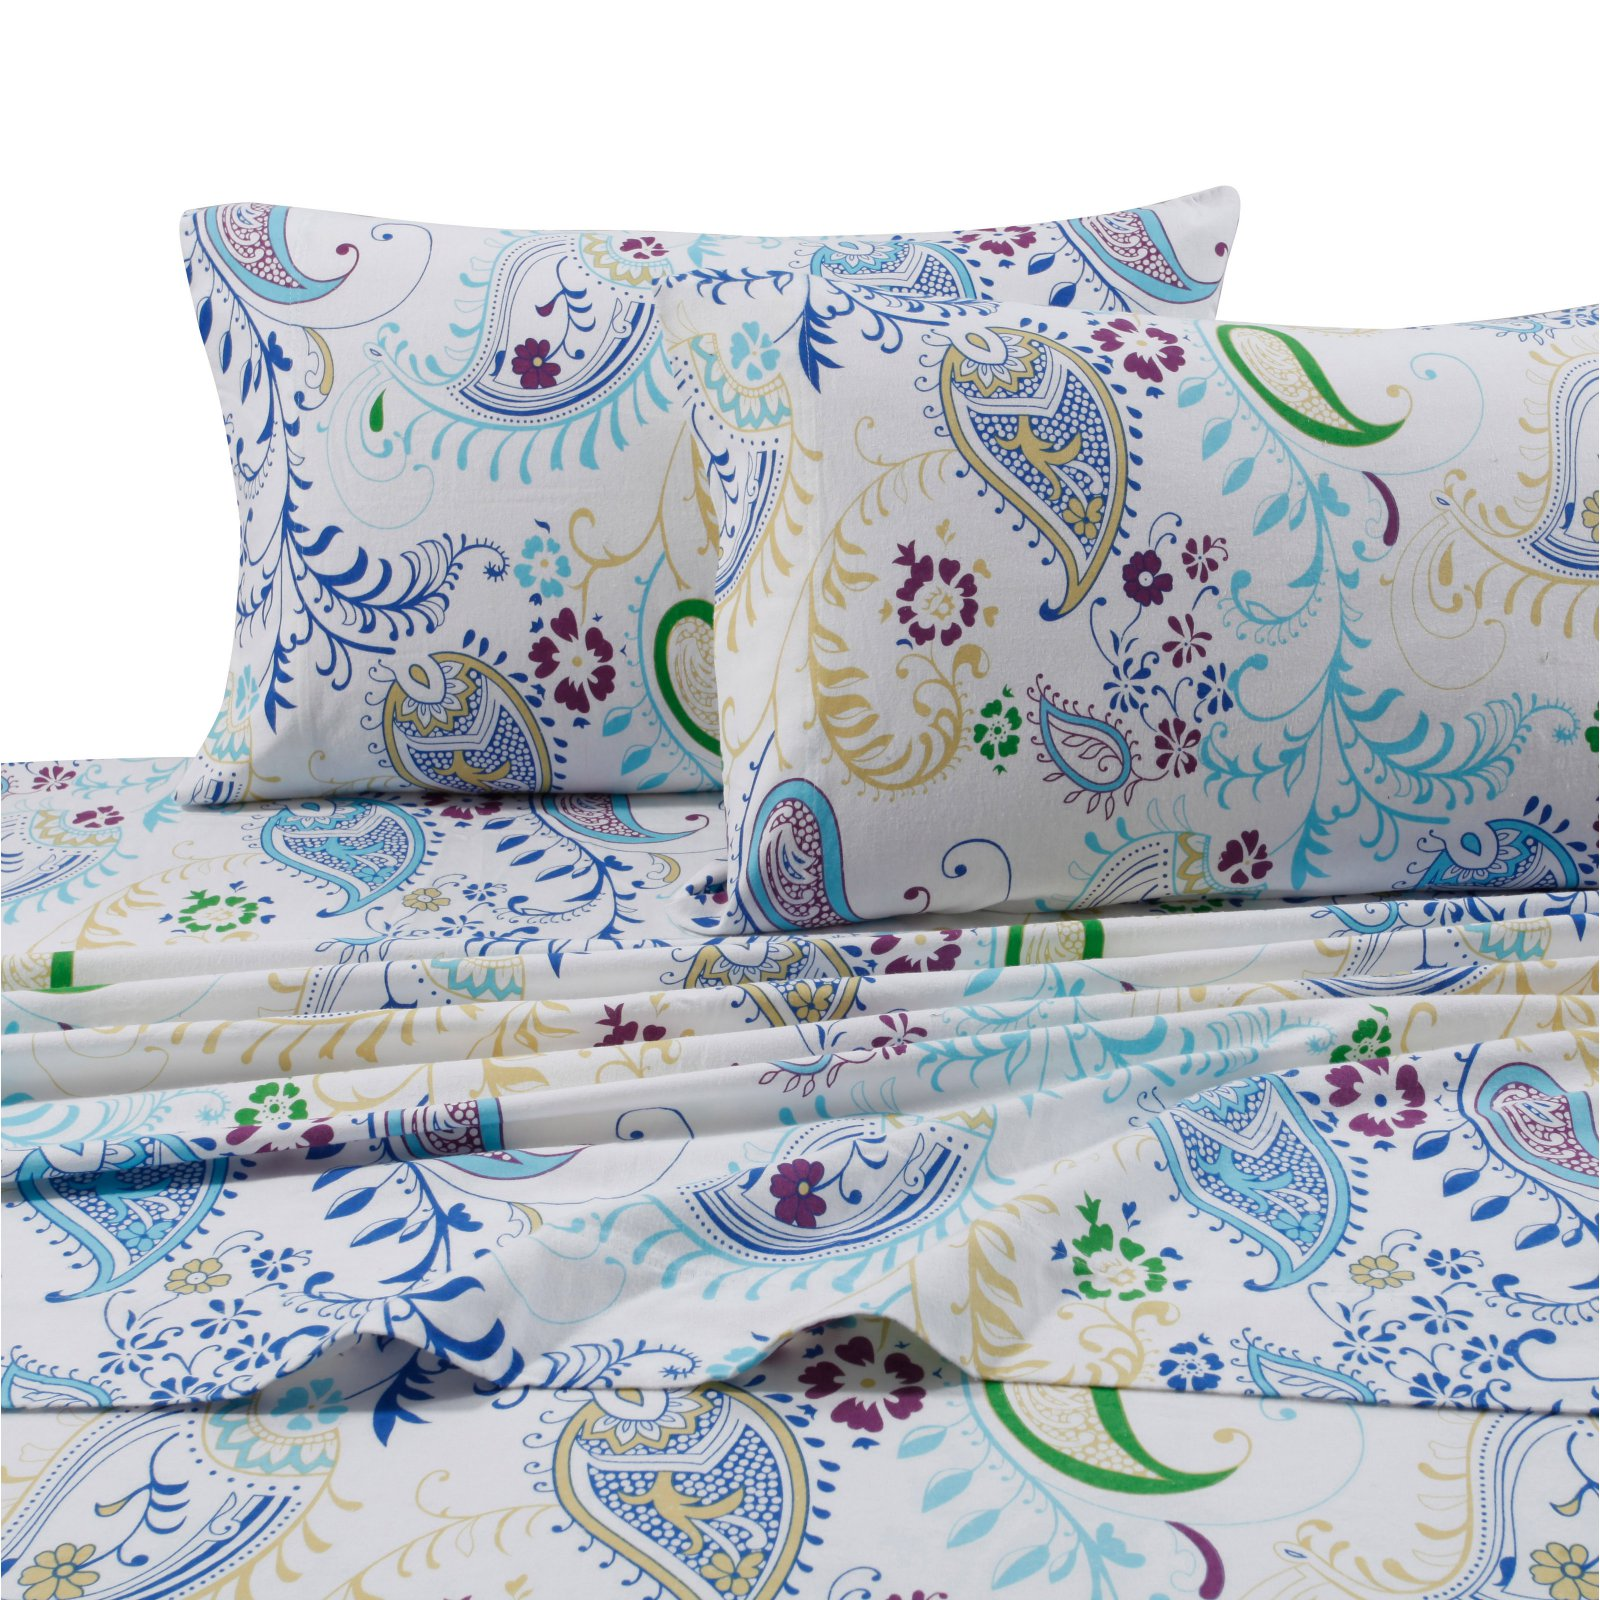 Printed Flannel 4 Piece Sheet Set by Tribeca Living - Paisley Garden